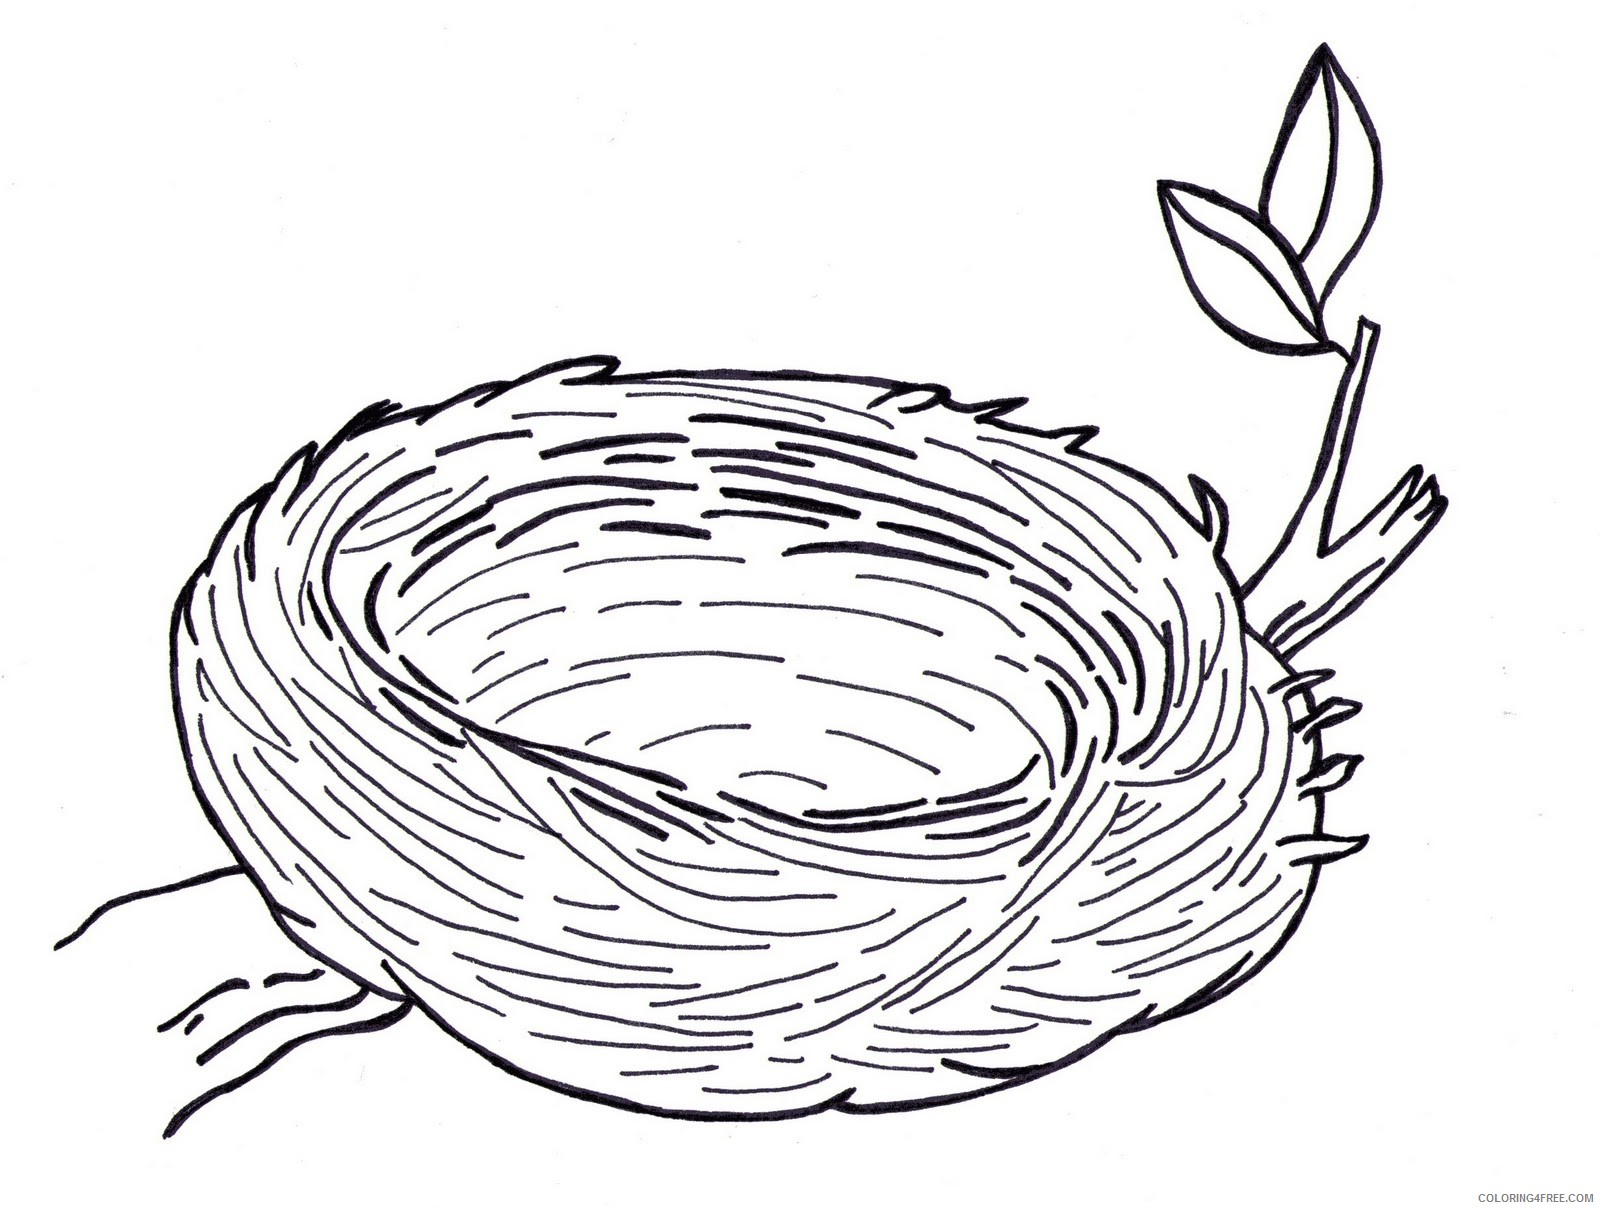 Bird Nest Coloring Pages bird nest images pictures Printable Coloring4free